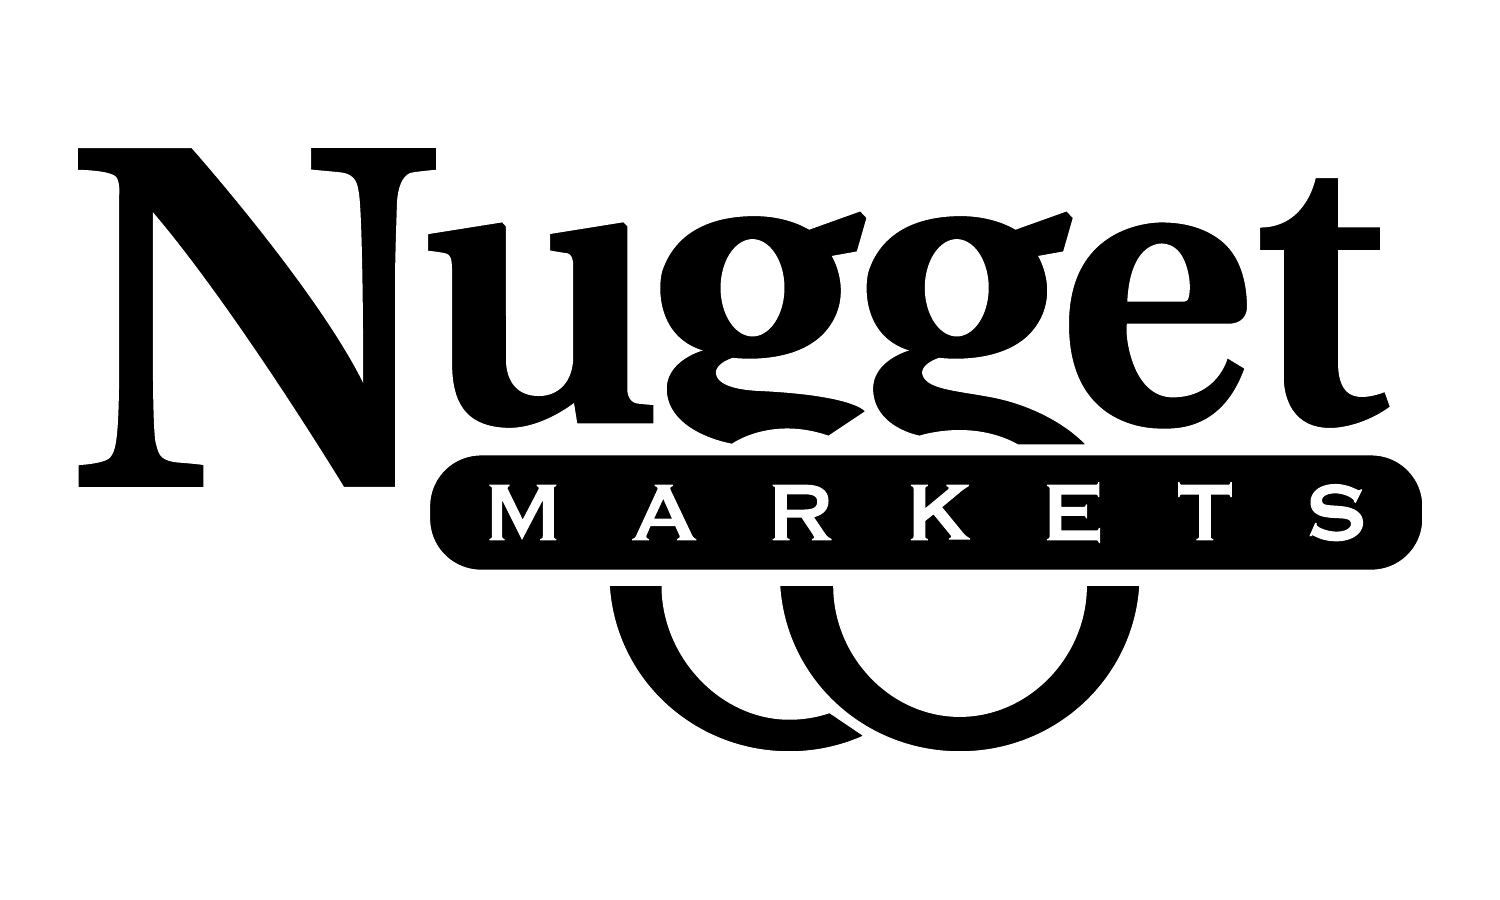 nugget-markets-black.jpg